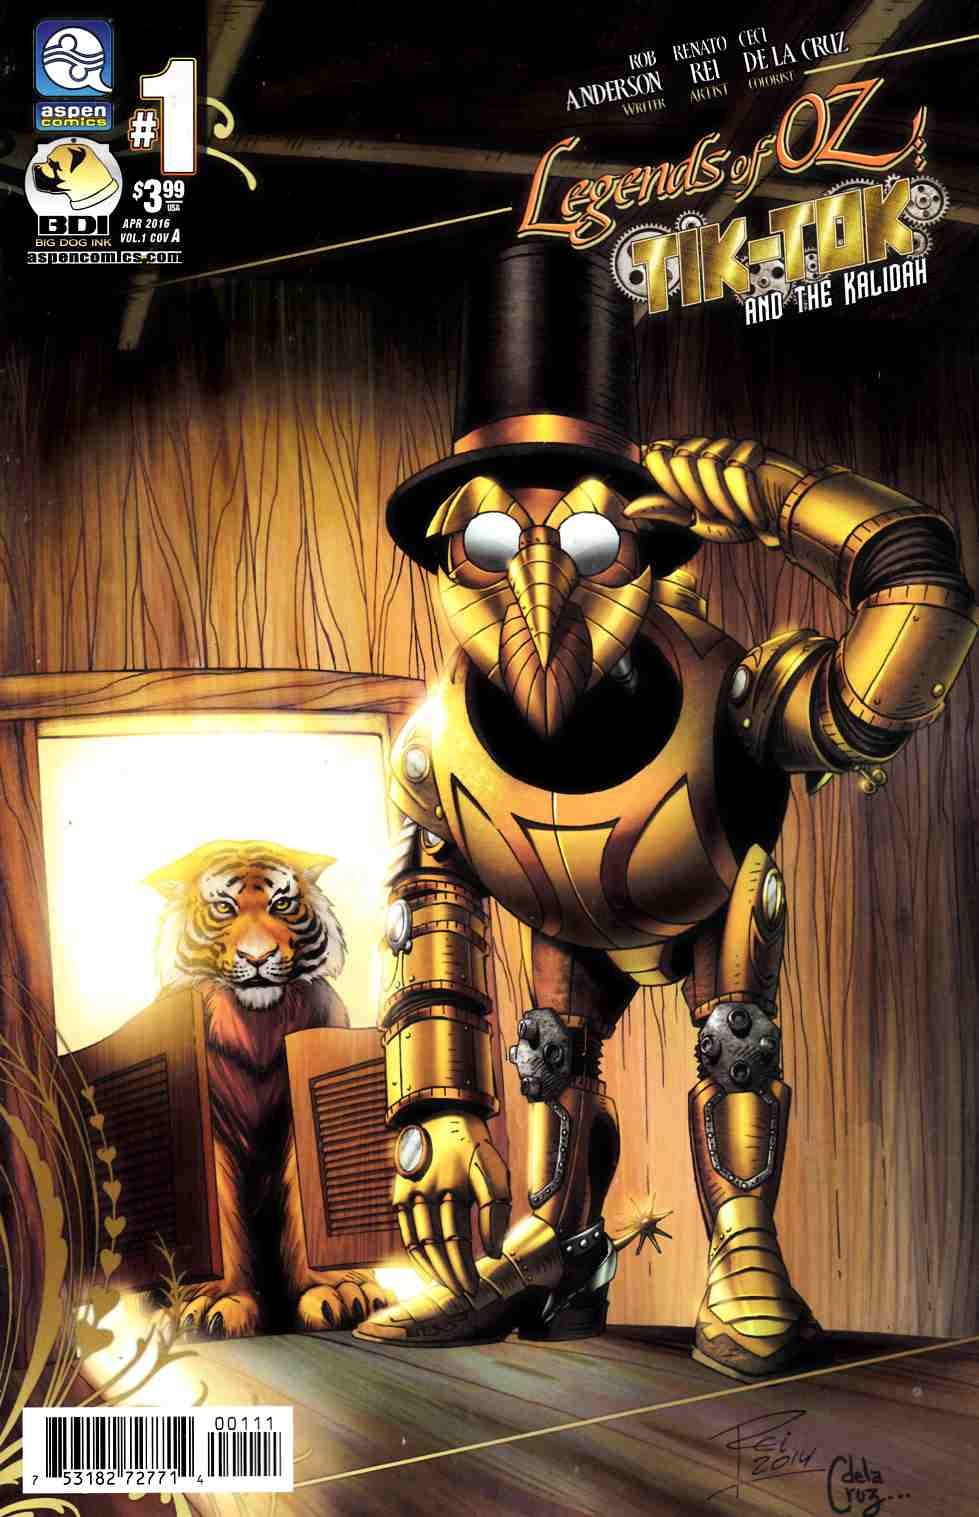 Legends Of Oz Tik Tok and Kalidah #1 Cover A [Aspen Comic] THUMBNAIL